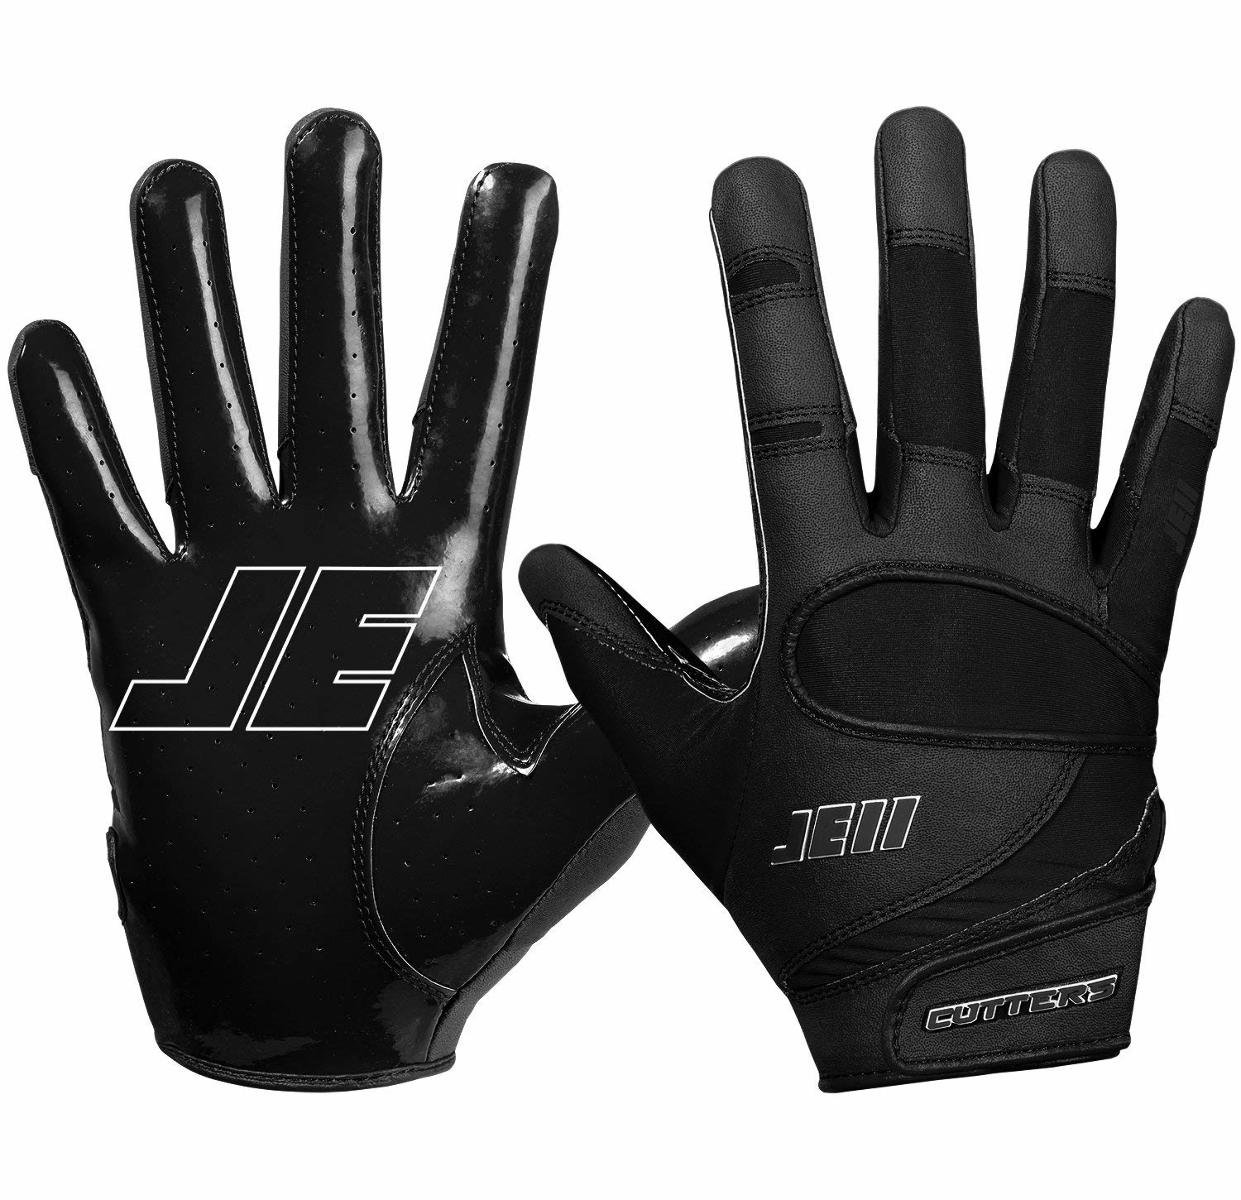 Cutters Gloves Signature Gloves, Black, Small by Cutters (Image #1)